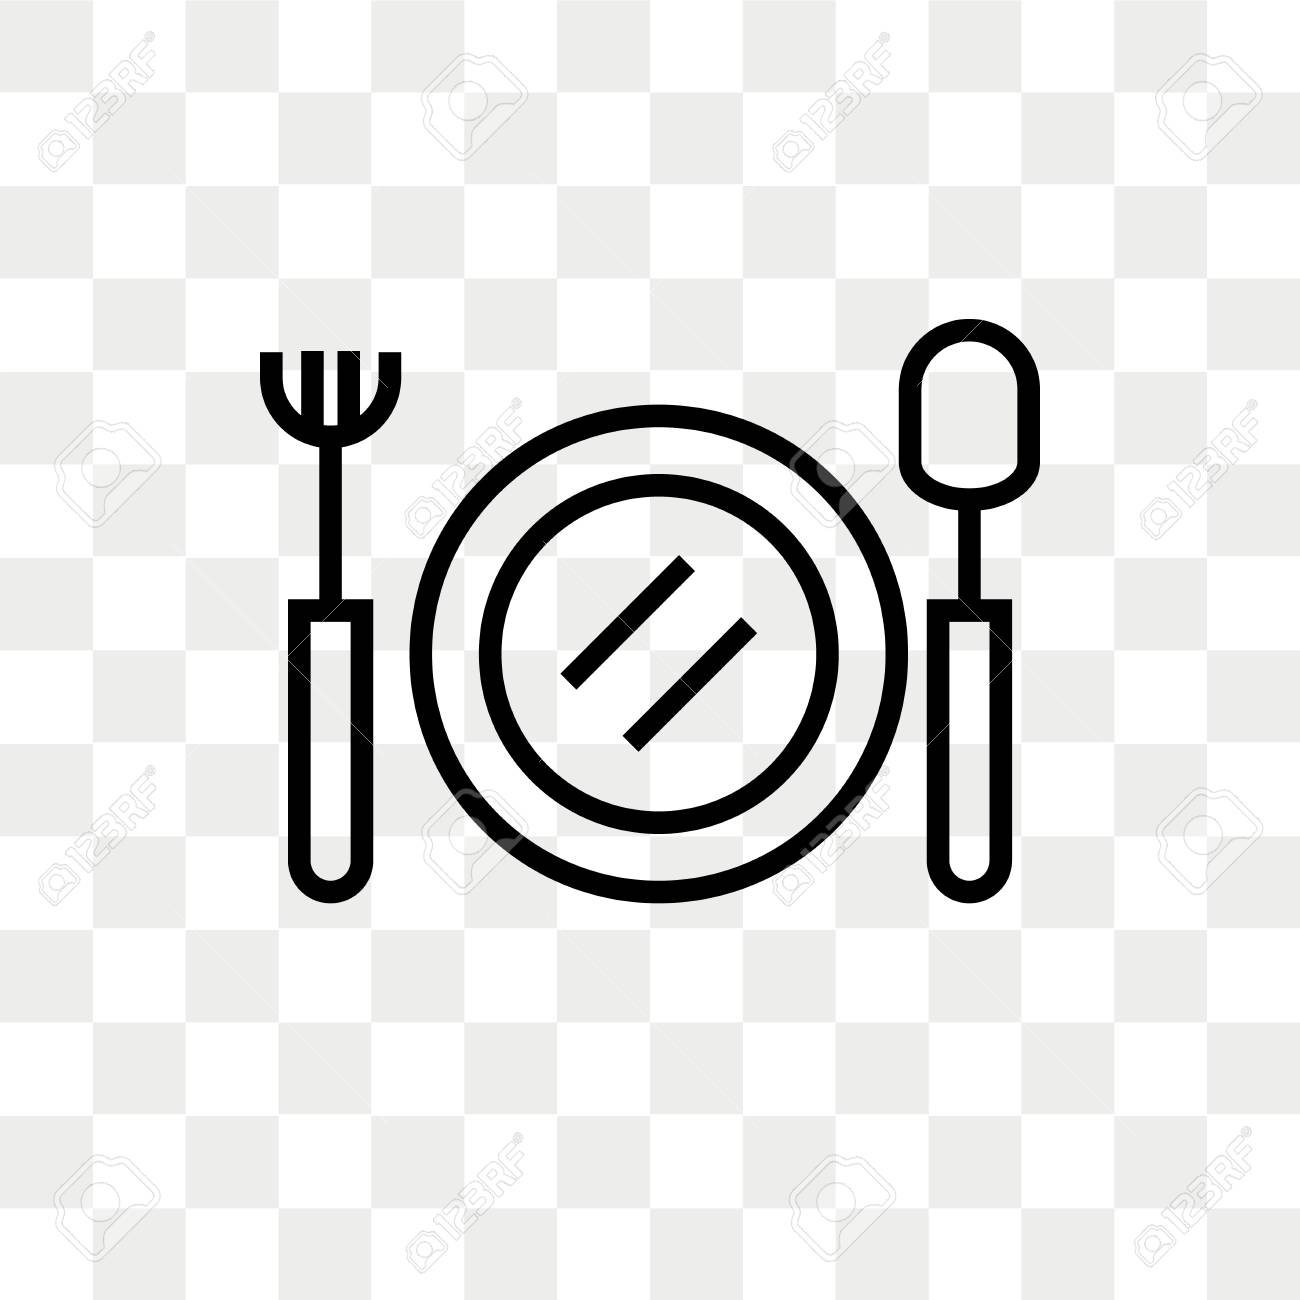 Food vector icon isolated on transparent background, Food logo